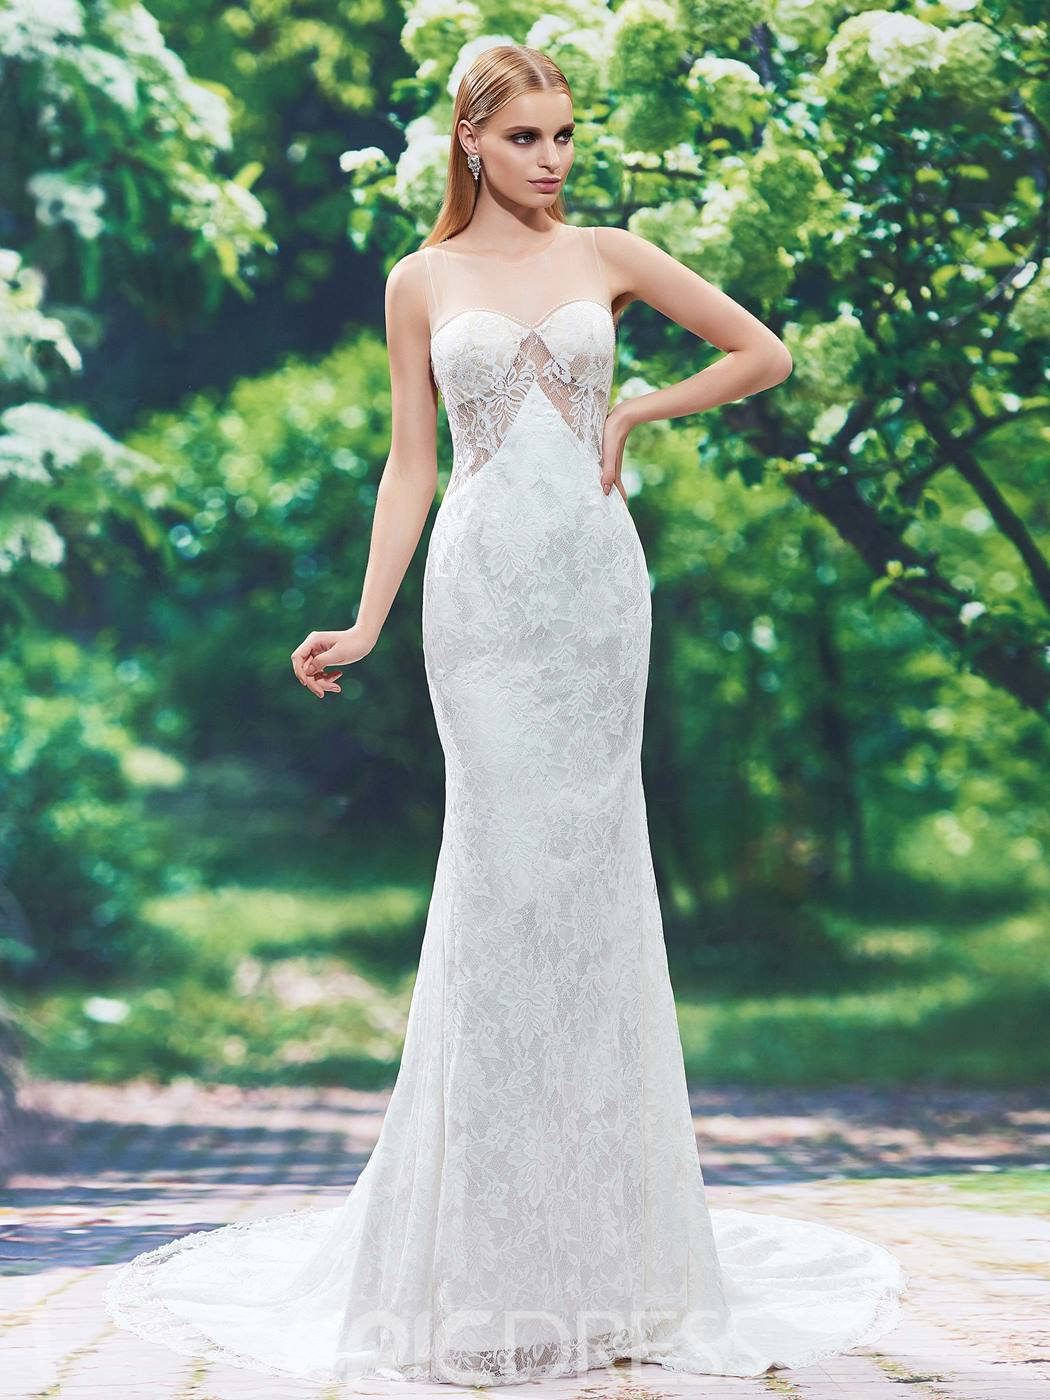 Ericdress Charming Jewel Beaded Lace Mermaid Wedding Dress